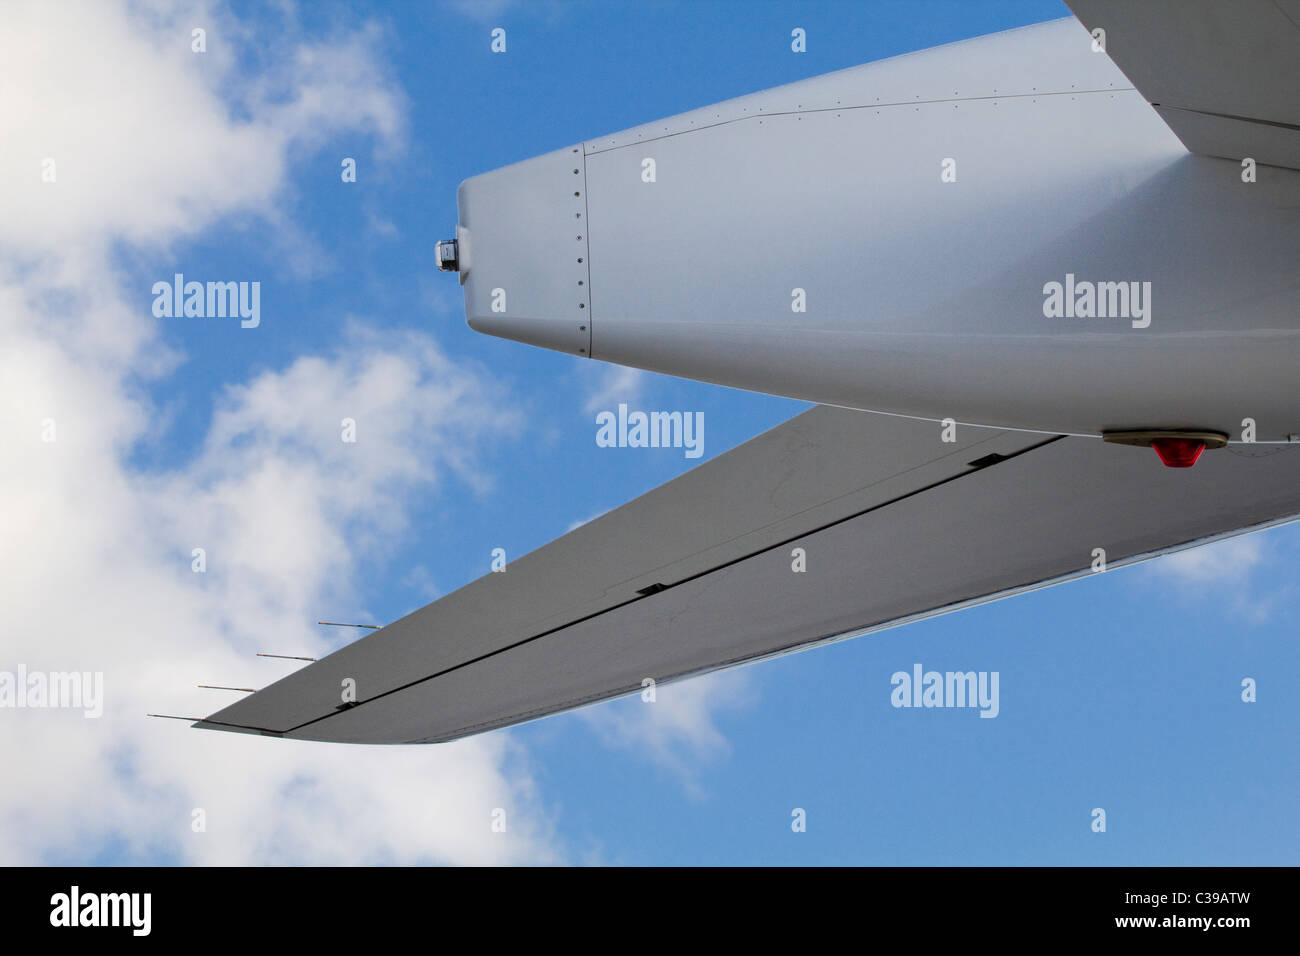 small jet aircraft tail section - Stock Image